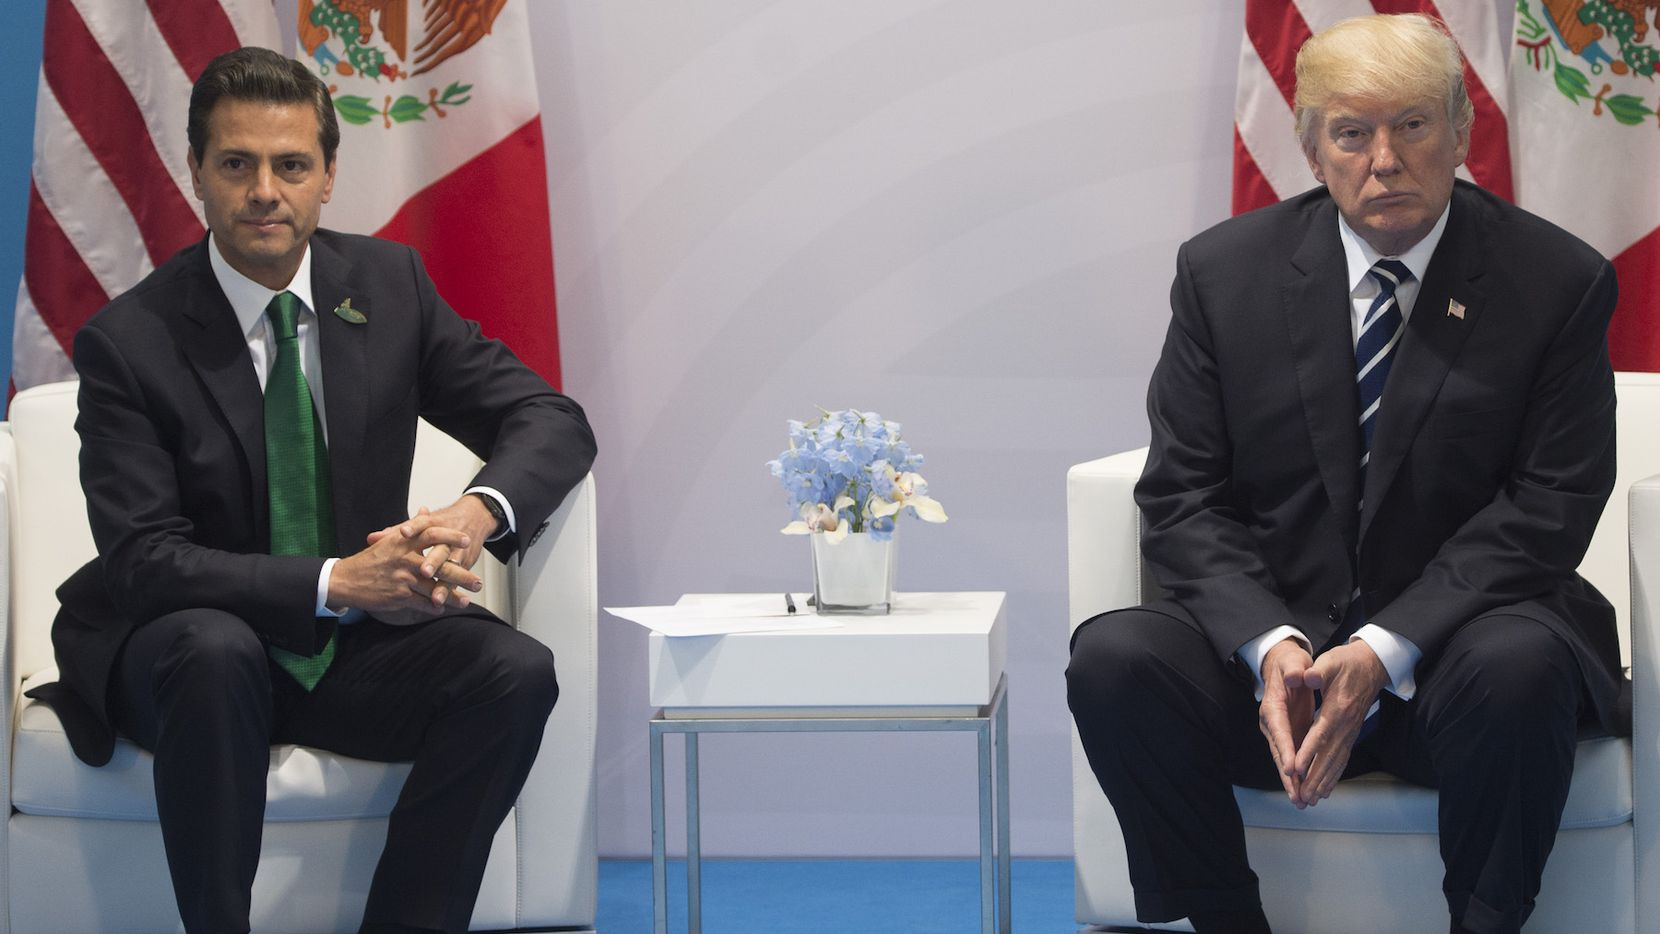 Enrique Peña Nieto y Donald Trump, en una reunión de presidentes en  Alemania, en julio. GETTY IMAGES.